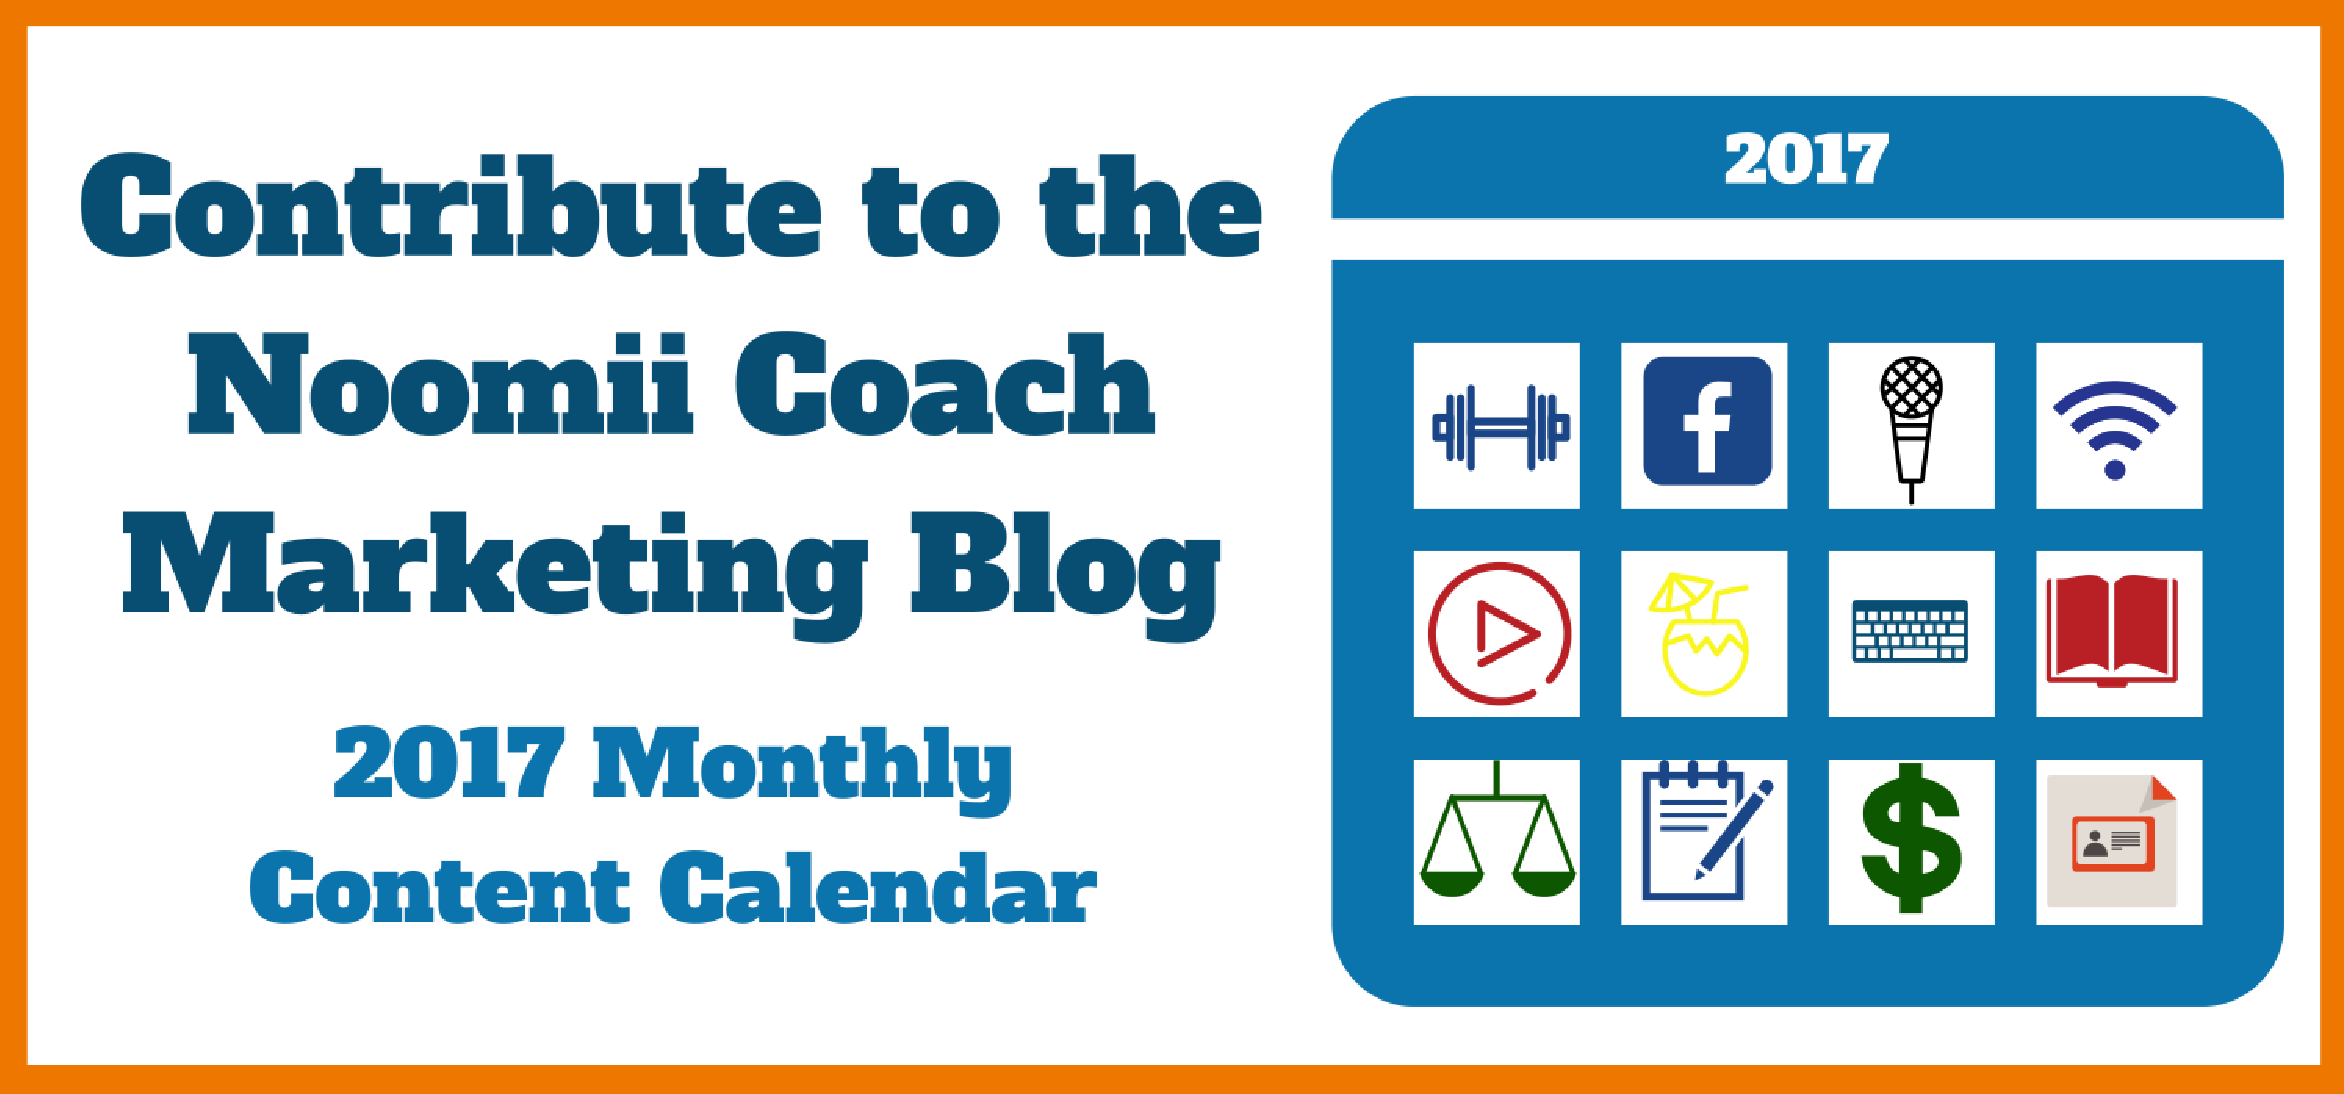 Contribute to The Coach Marketing Blog in 2017 - Check out